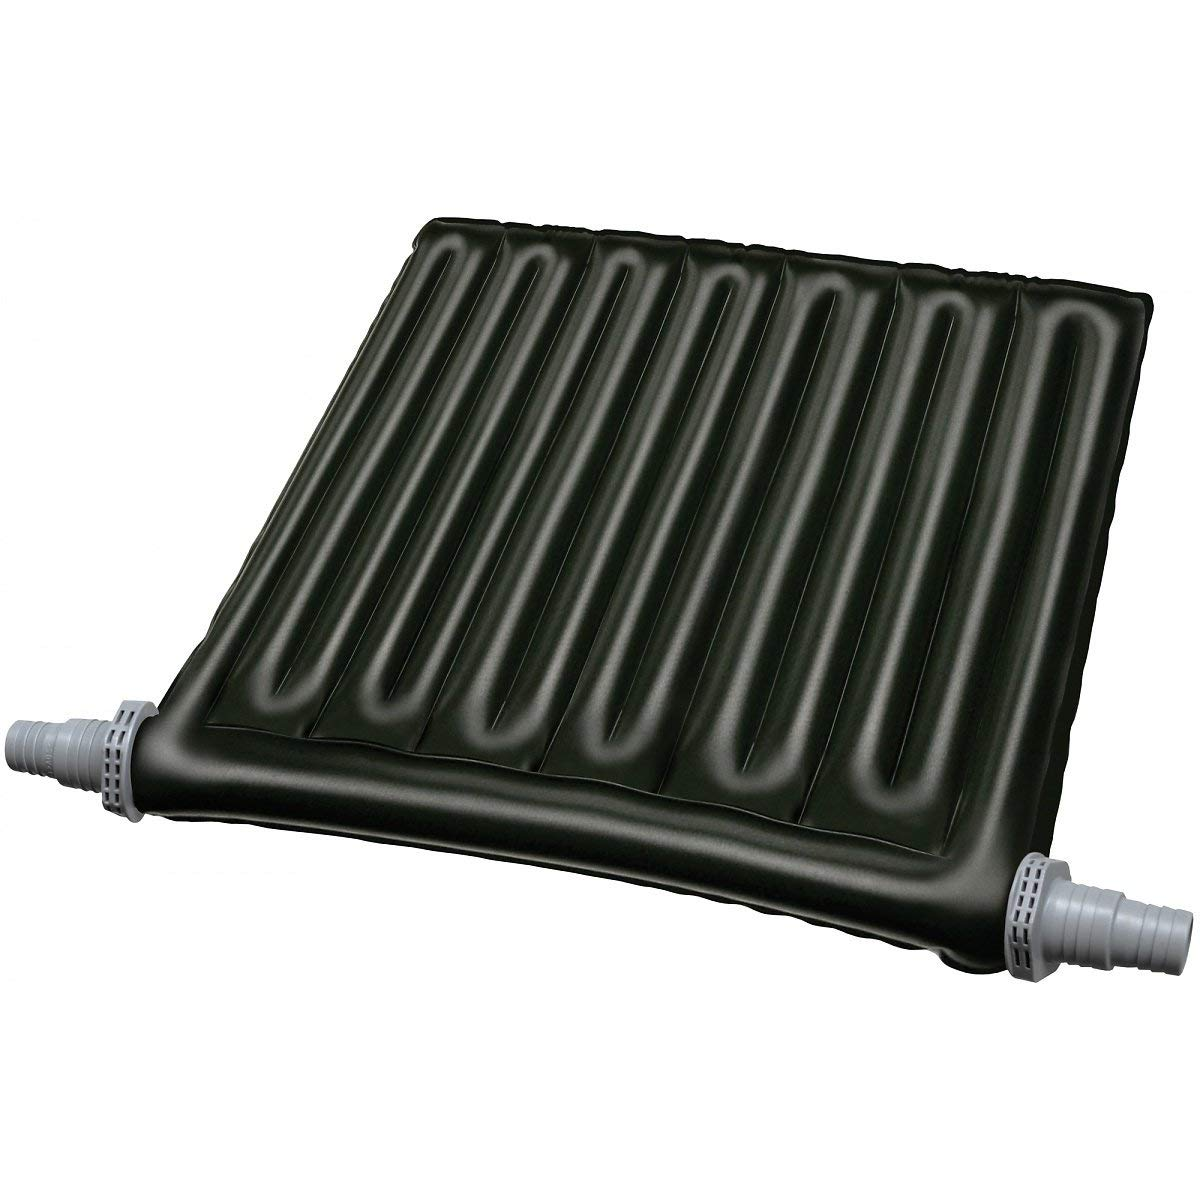 SolarPRO XB2 Solar Pool Heater for Above-Ground Swimming Pool   Single Panel   Use The Sun's Free Energy to Heat Up Your Pool